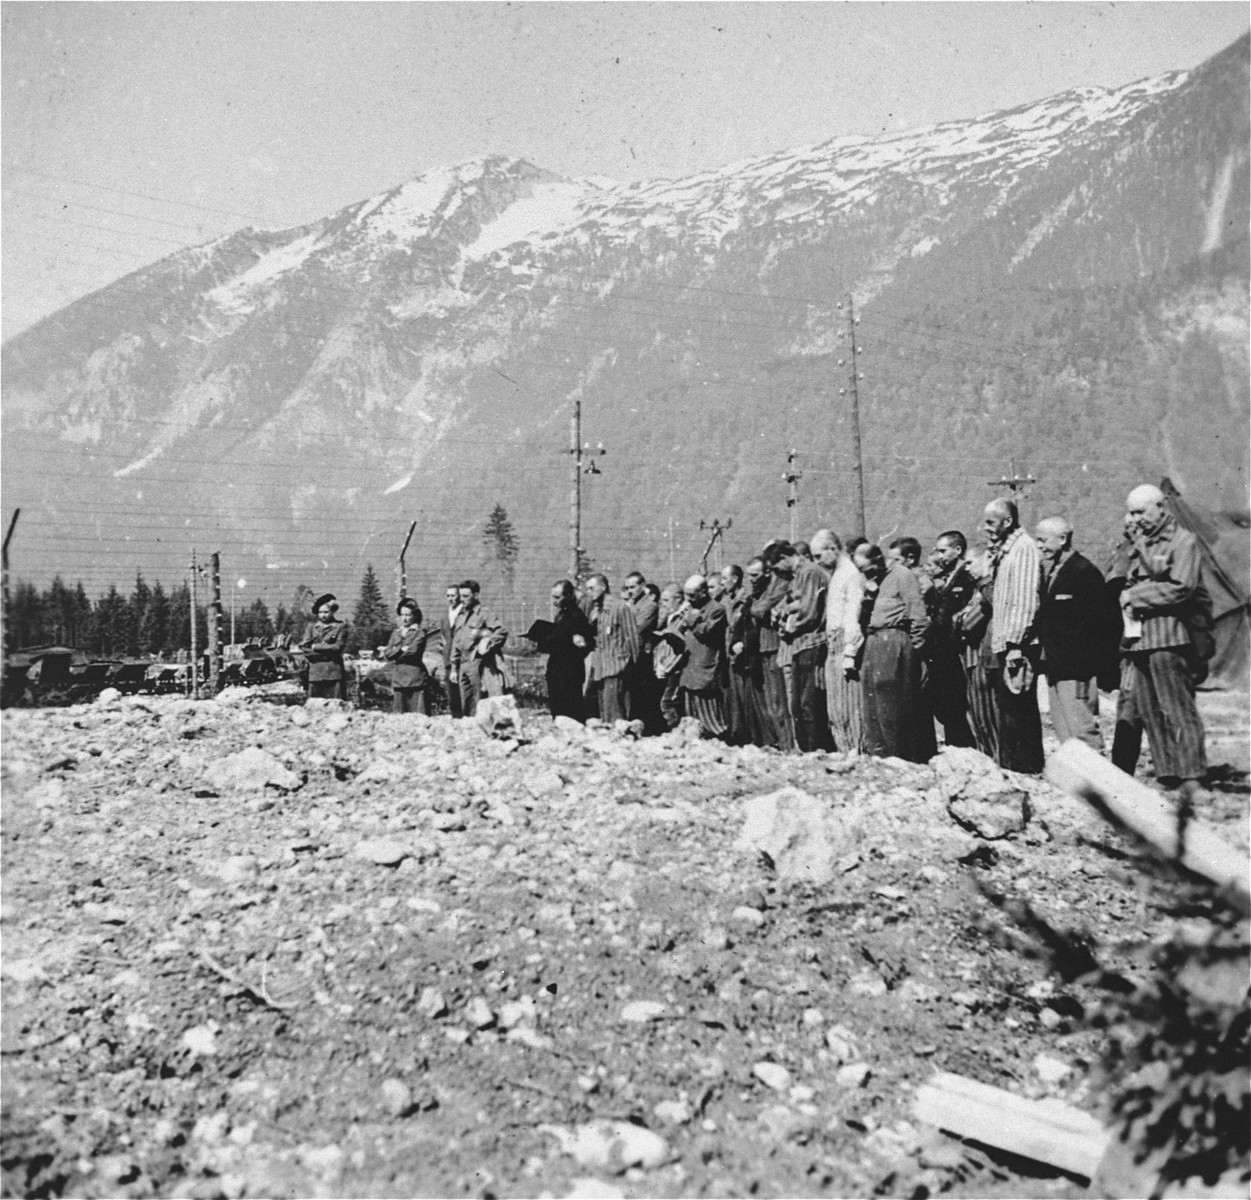 Survivors and military personnel in Ebensee attend a funeral ceremony at the edge of a mass grave holding some 1500-2000 bodies.